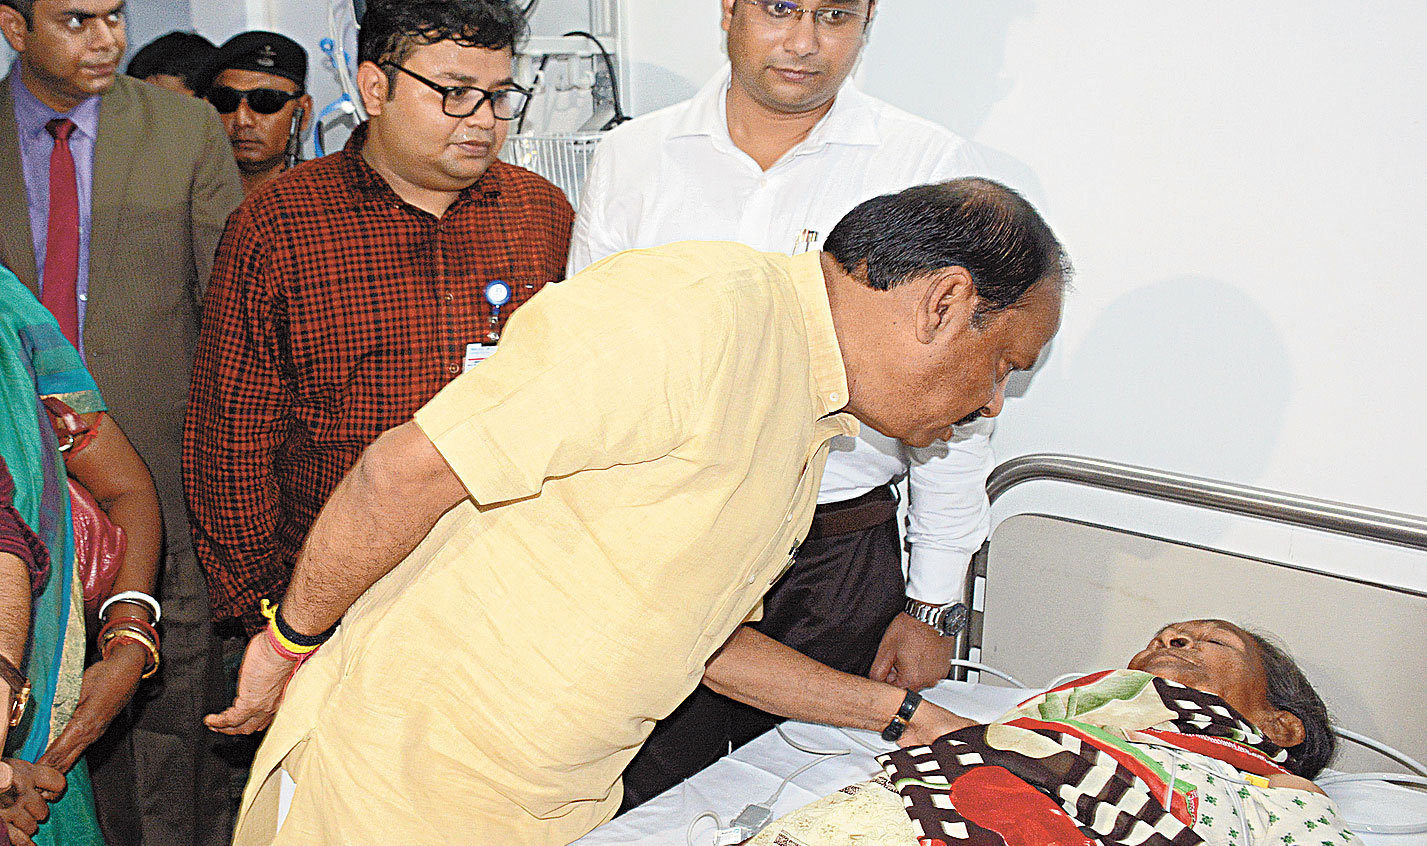 Chief minister Raghubar Das speaks to a patient receiving treatment under the Centre's scheme at the hospital in Jamshedpur on Tuesday.